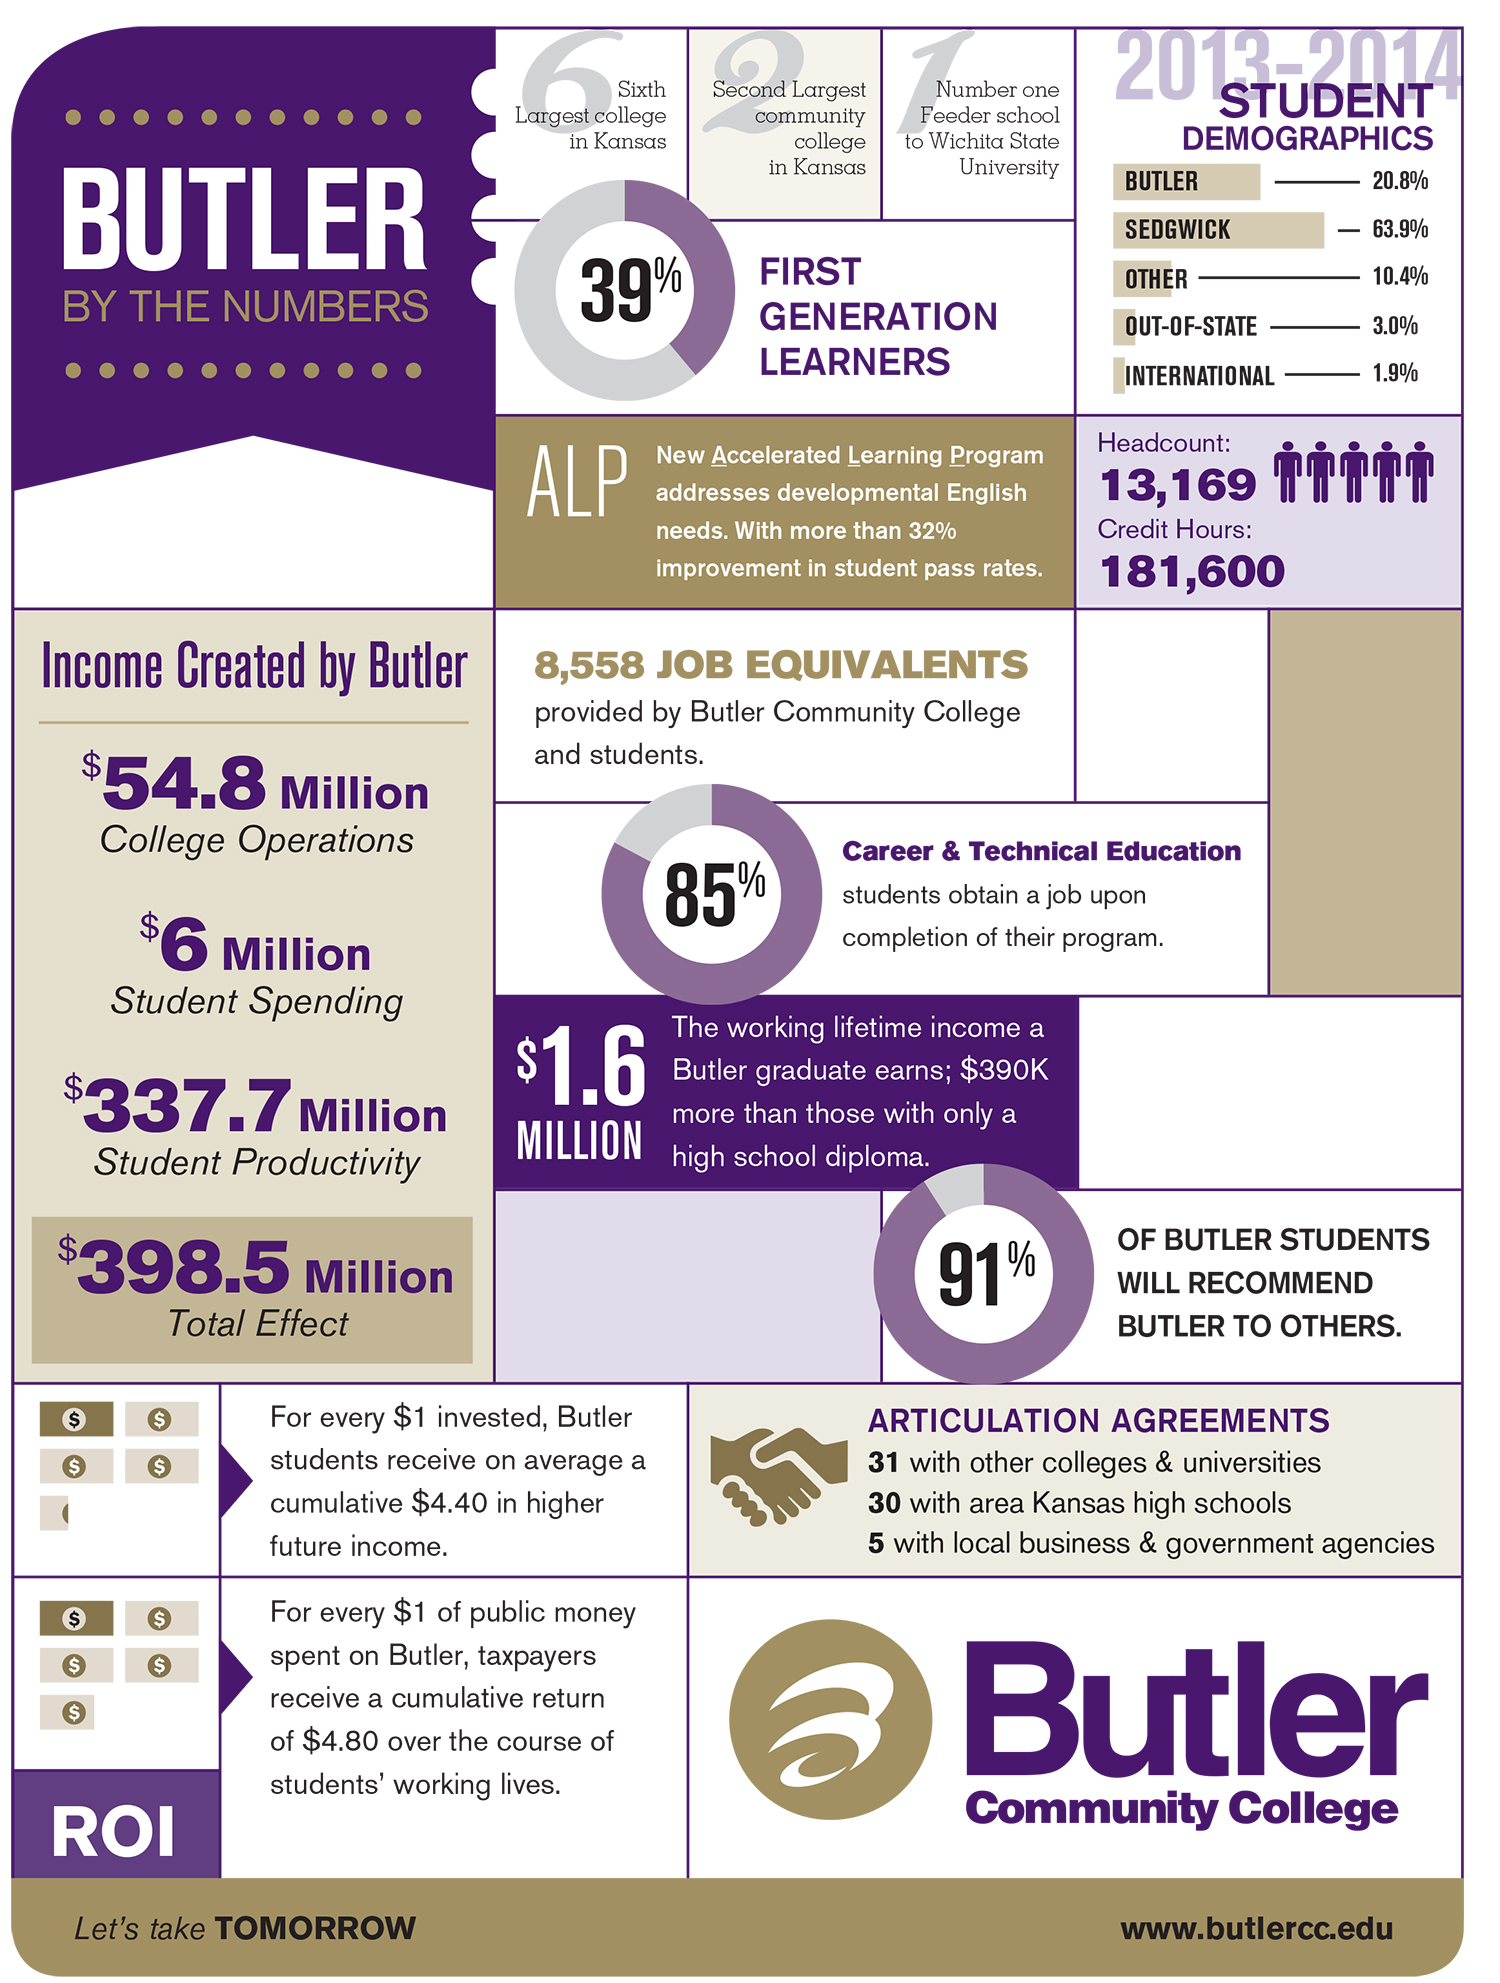 Butler by the Numbers